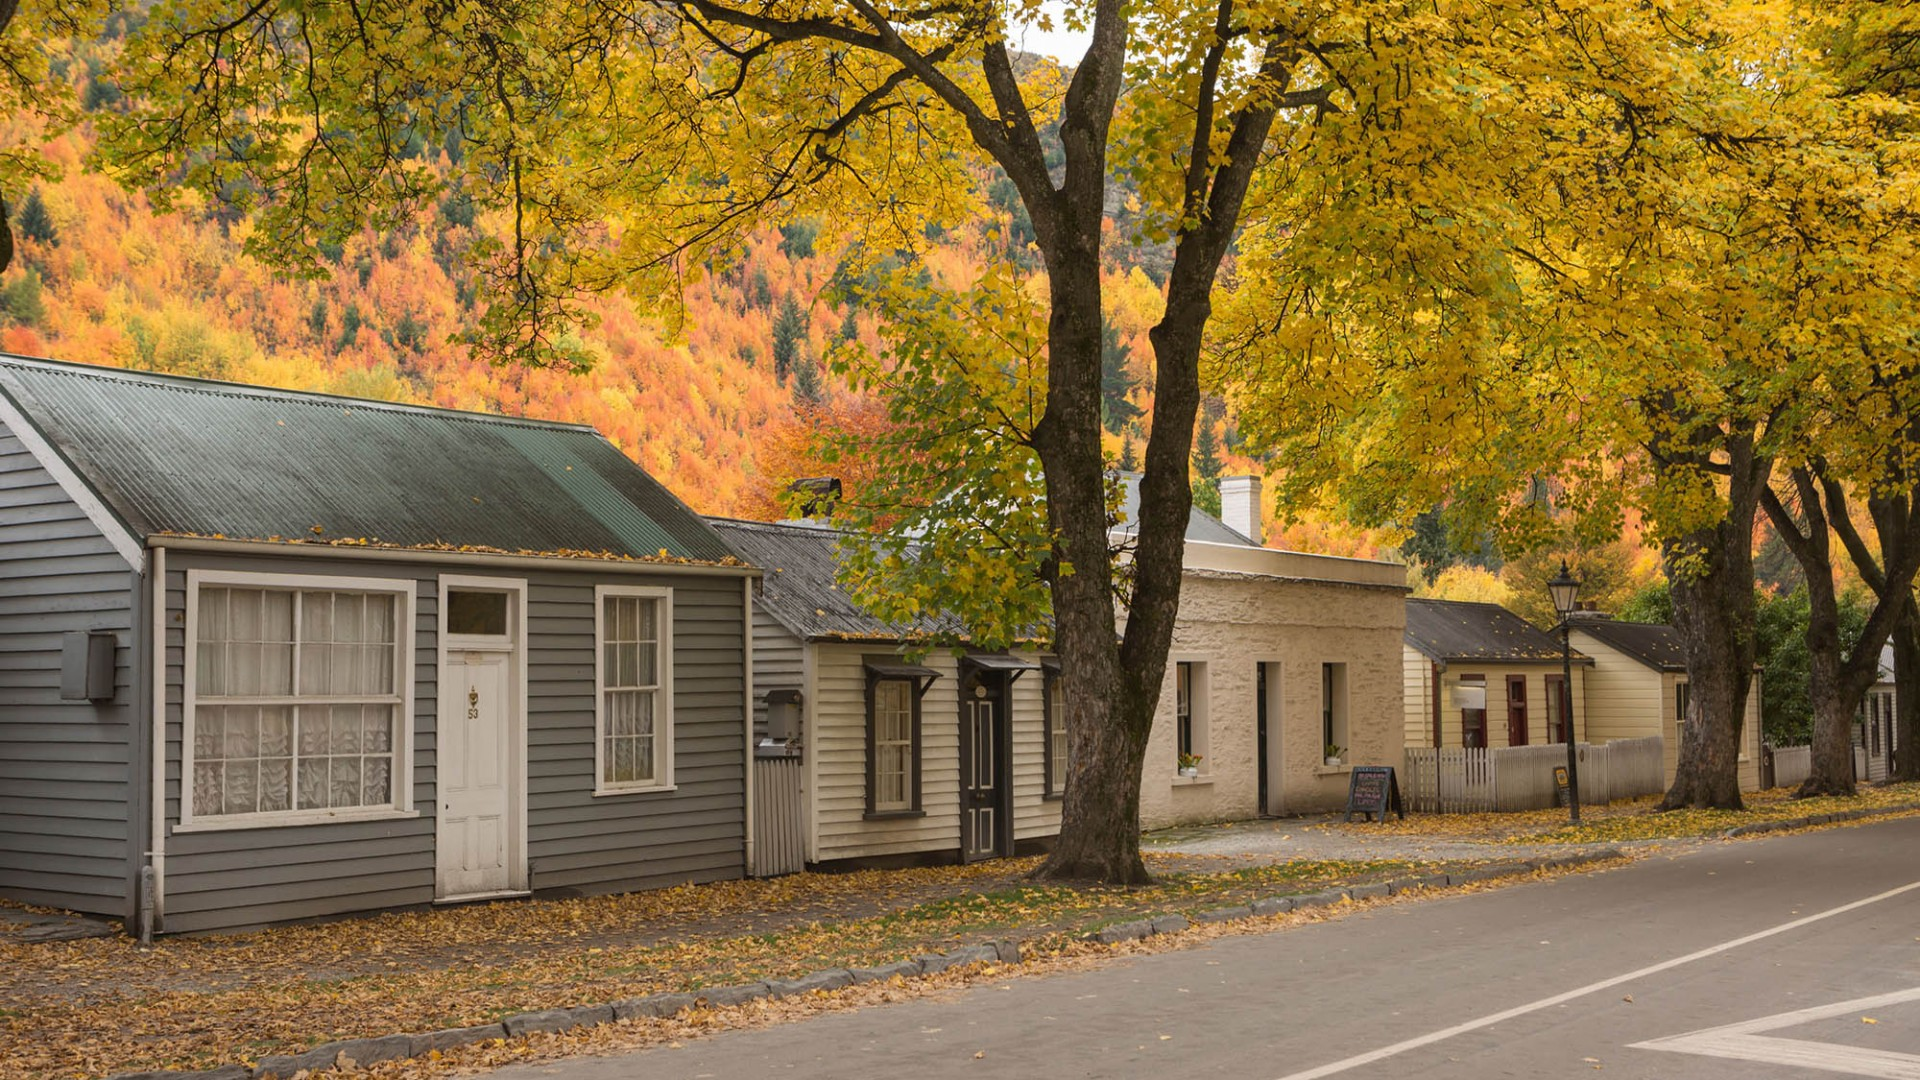 Arrowtown Miners Cottages In Autumn. Pic courtesy Arrowtown Promotion and Business Association